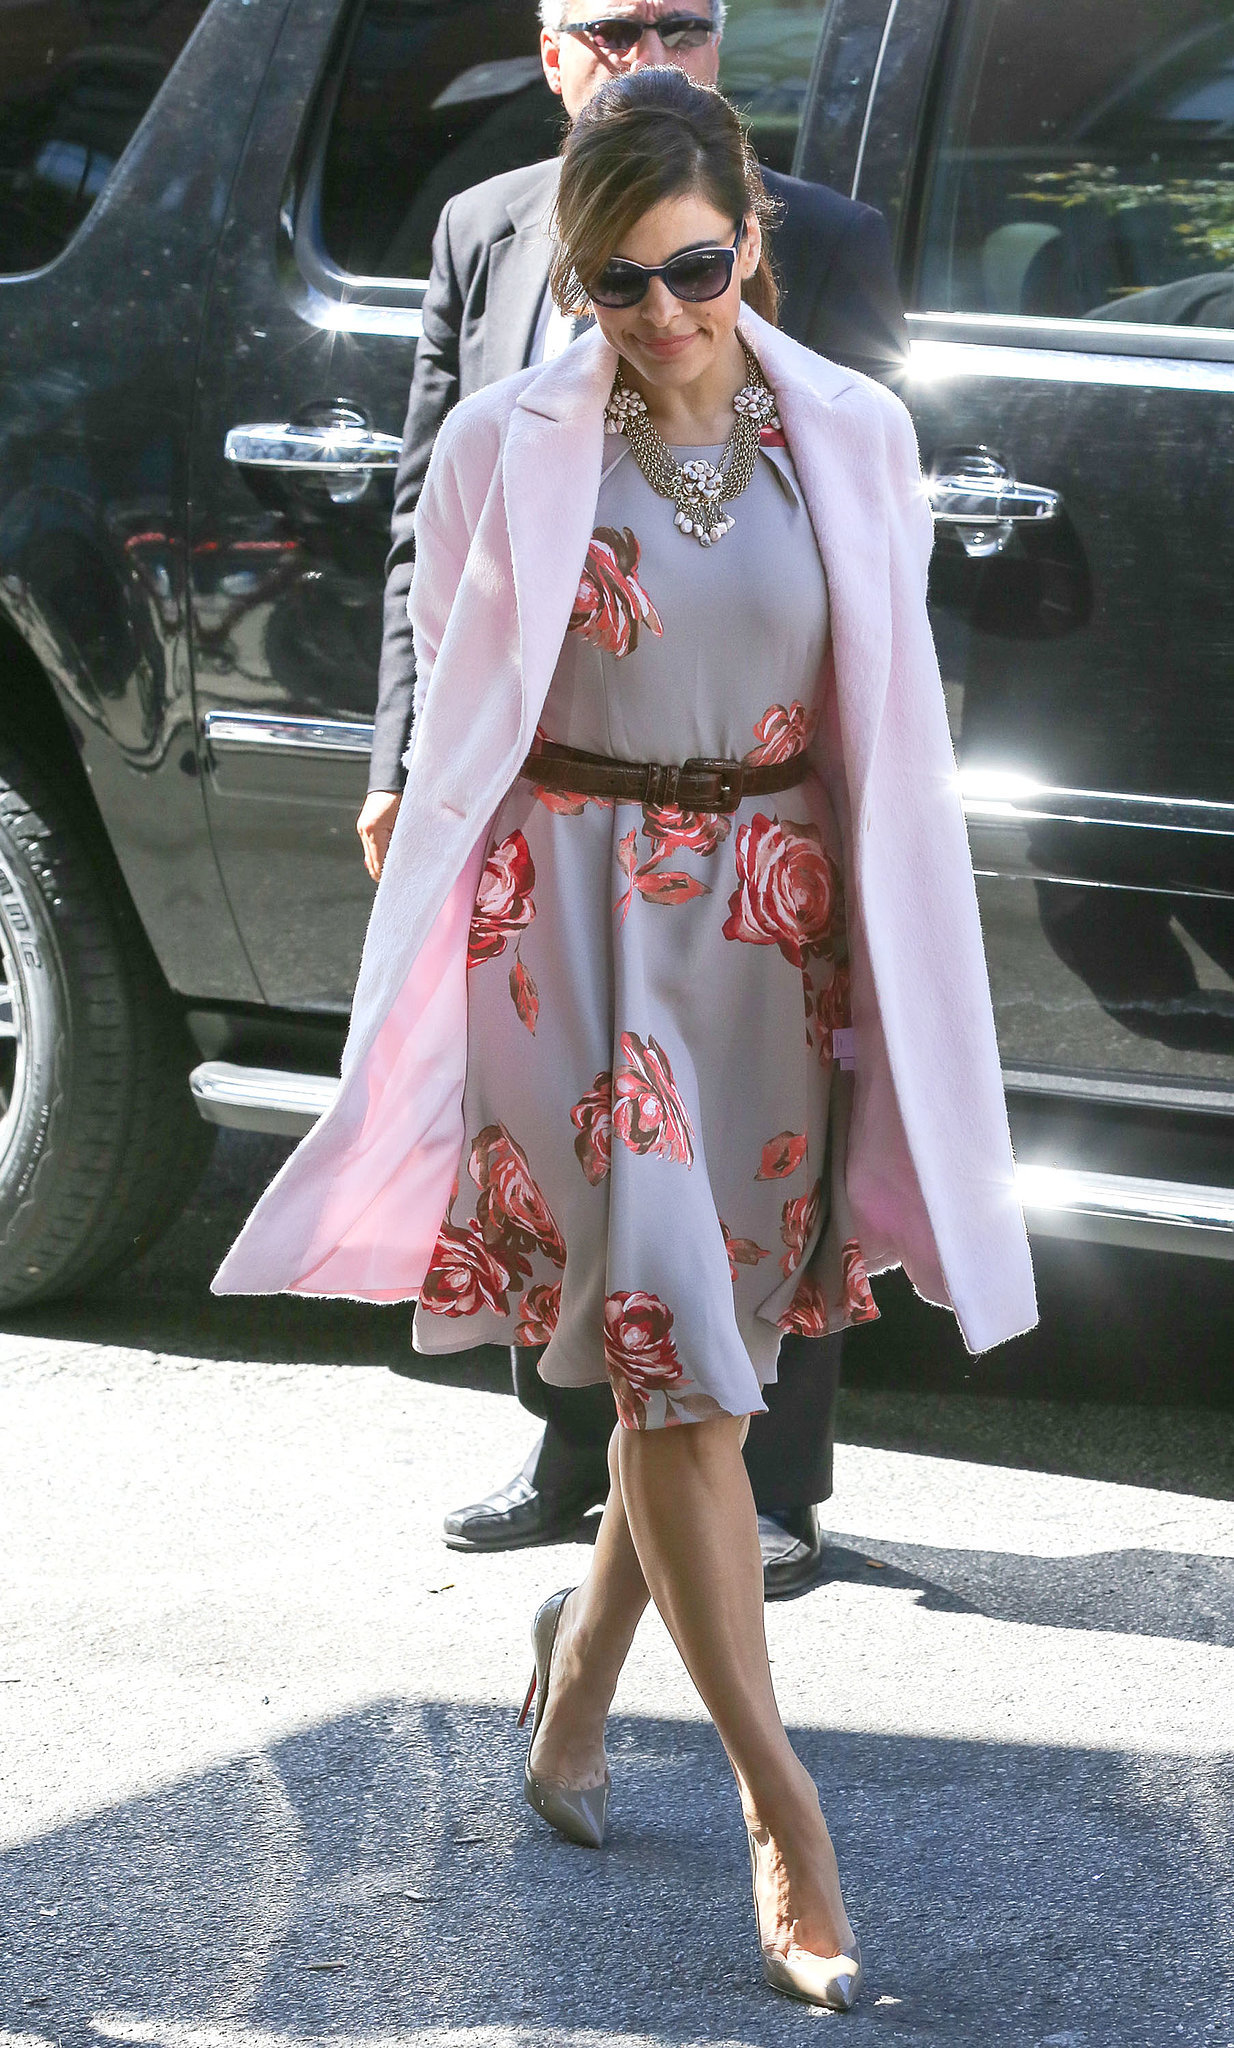 Donning one of her own blossoming creations from her New York & Co. collection, Eva Mendes looked picture-perfect in Fall 2013. Where t